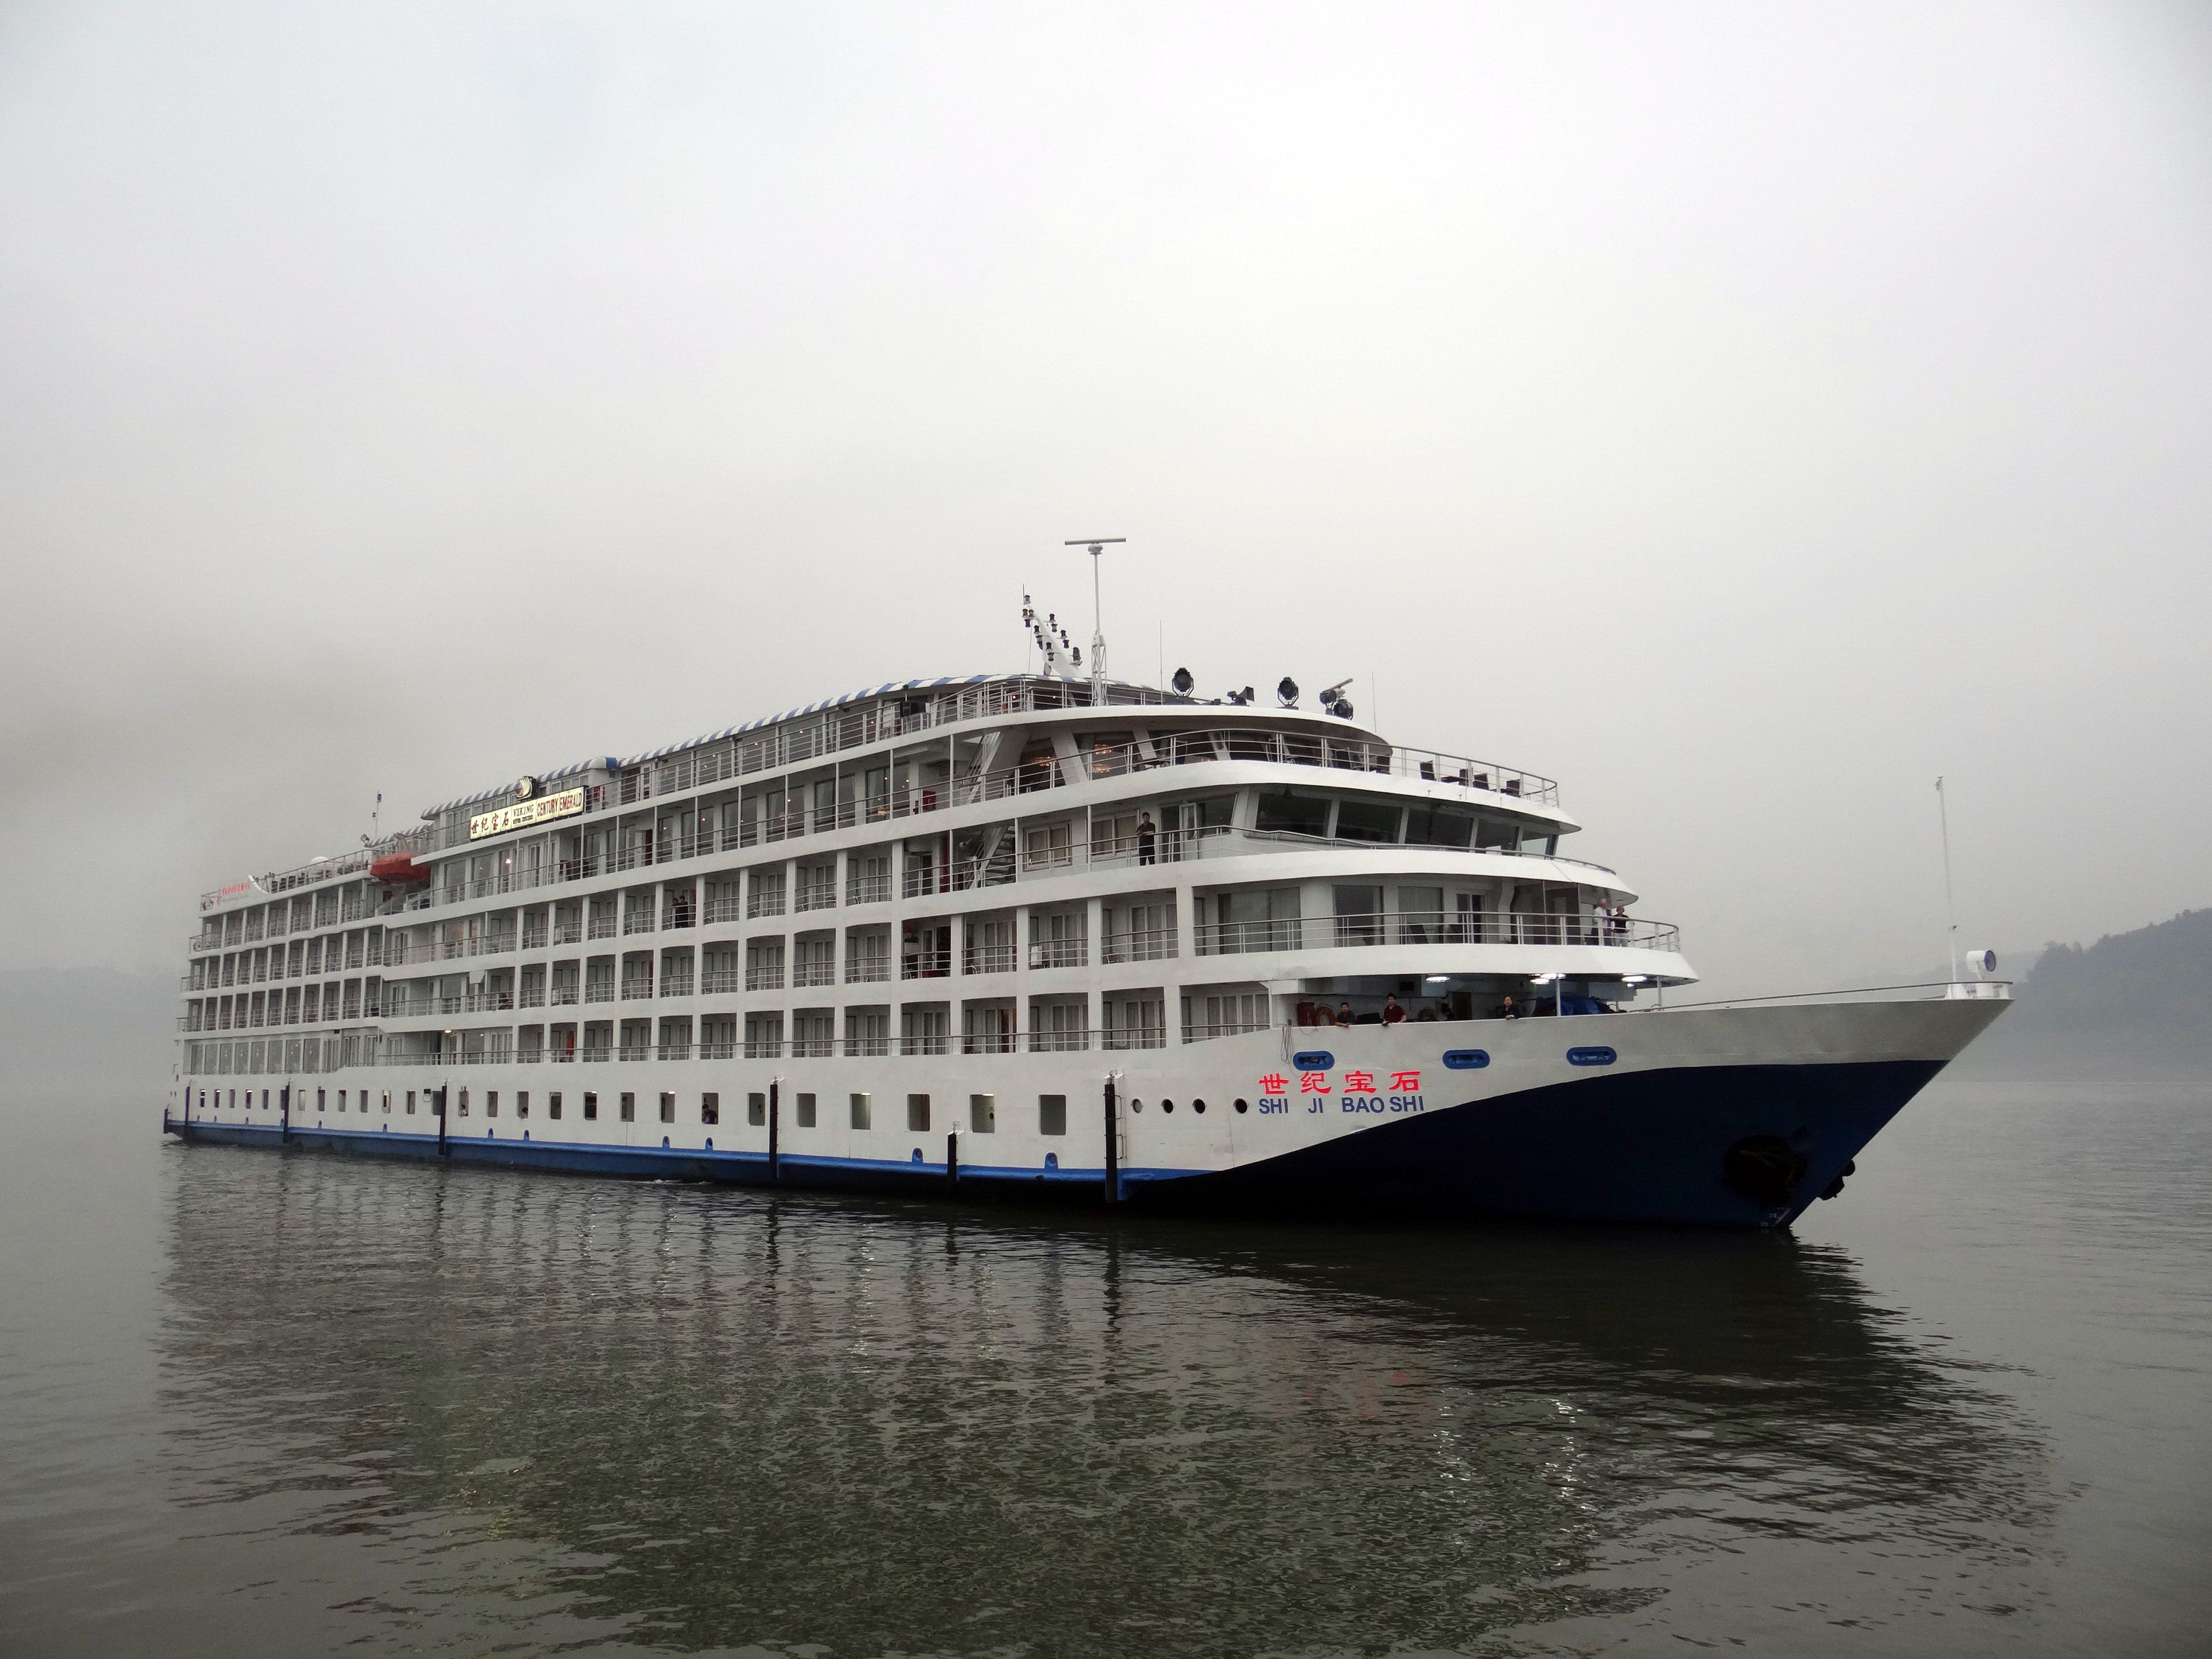 China Land Tour And Yangtze River Cruise With Viking River